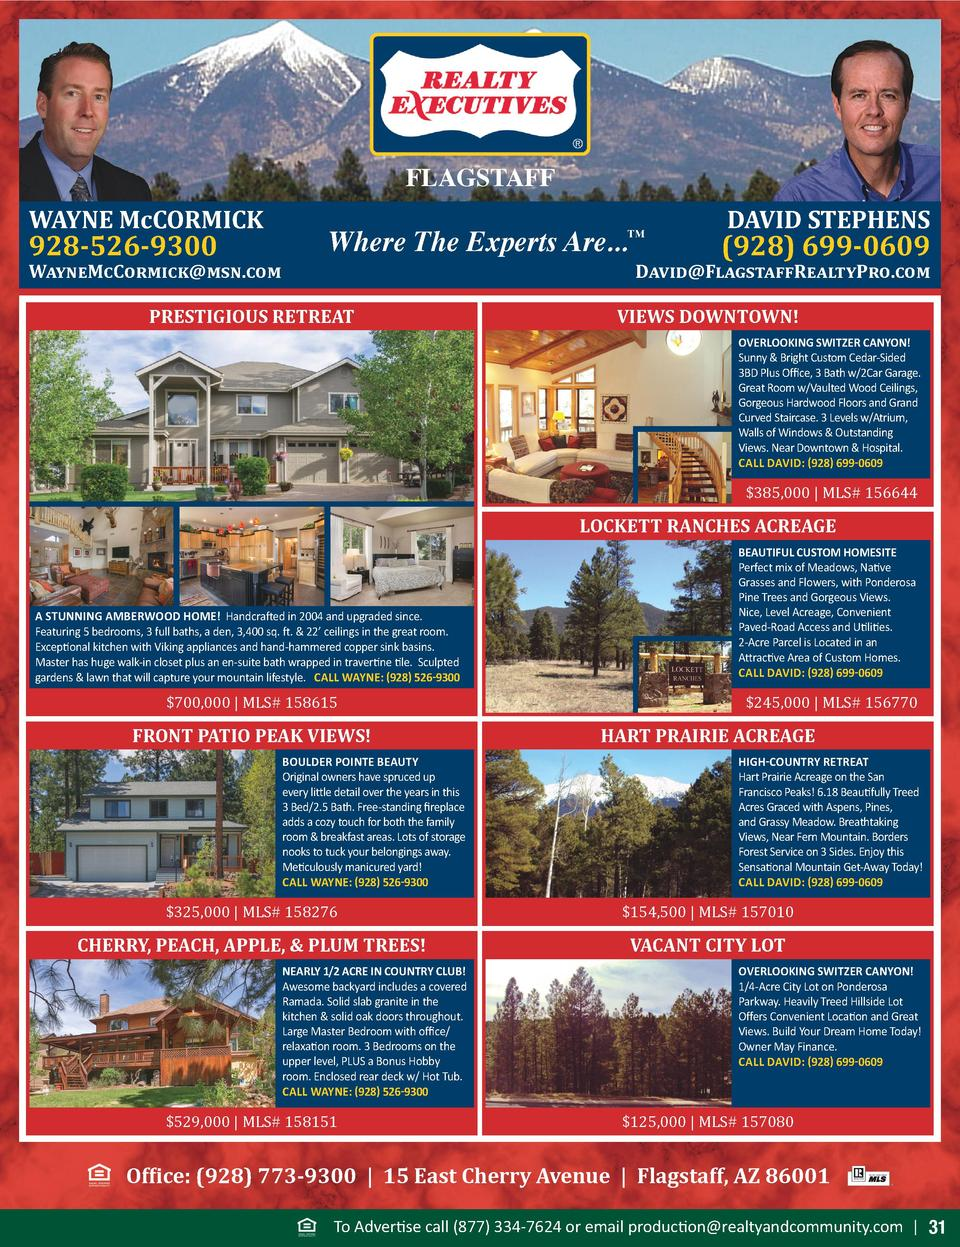 FLAGSTAFF WAYNE McCORMICK  928-526-9300  WayneMcCormick msn.com  Where The Experts Are...       PRESTIGIOUS RETREAT  DAVID...